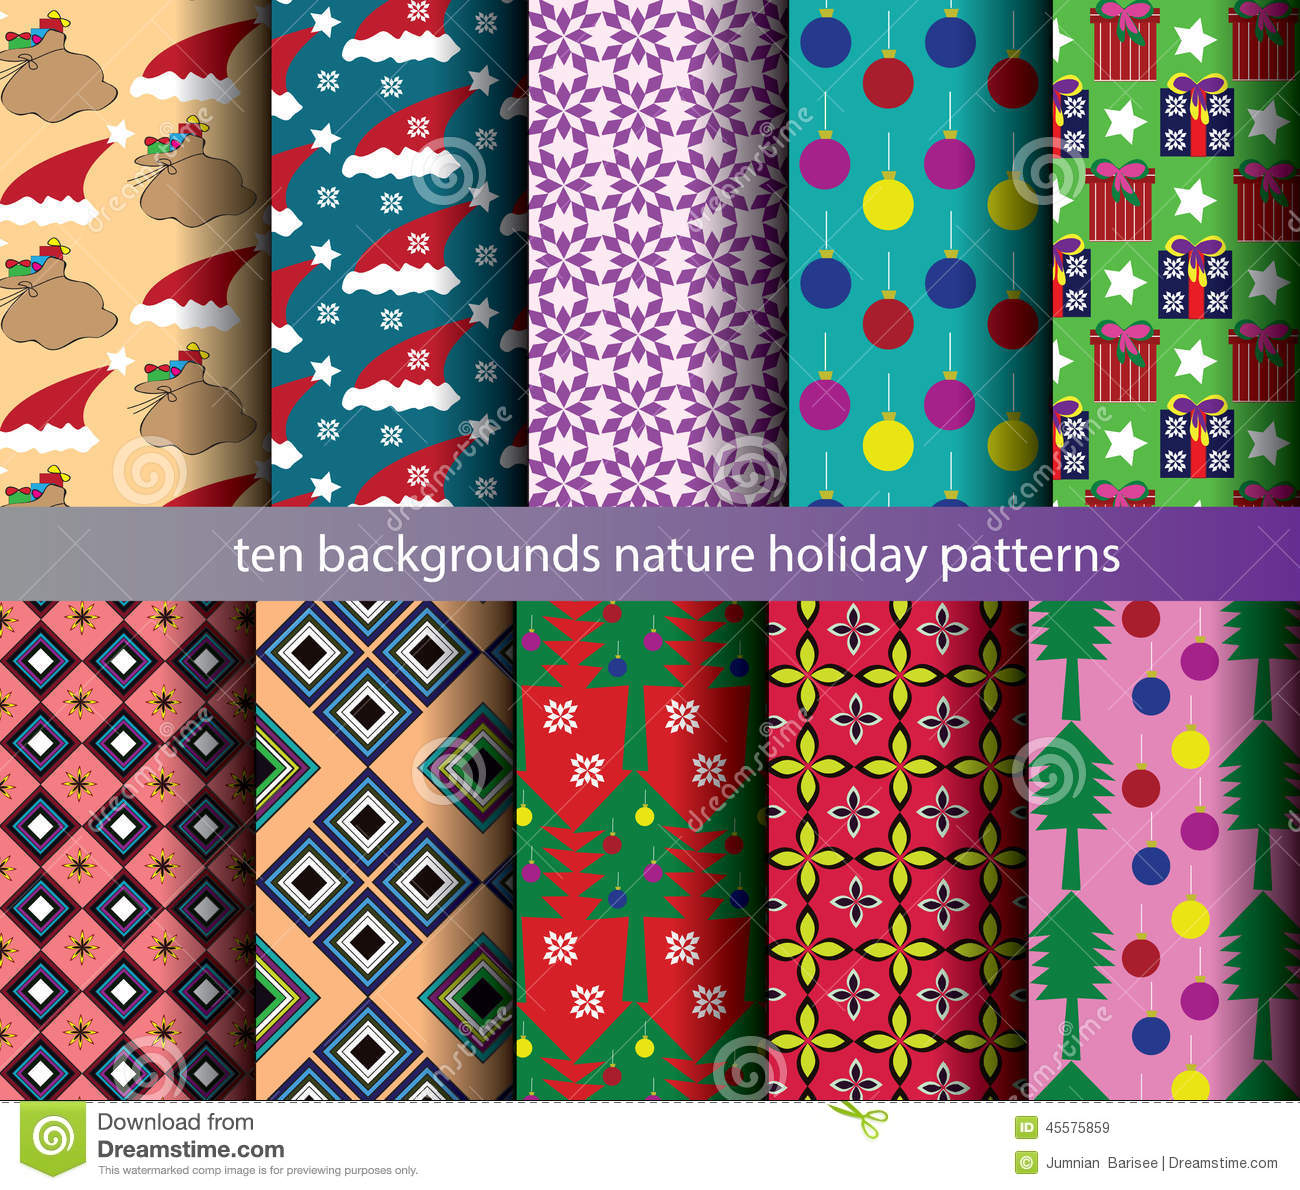 Ten nature backgrounds patterns